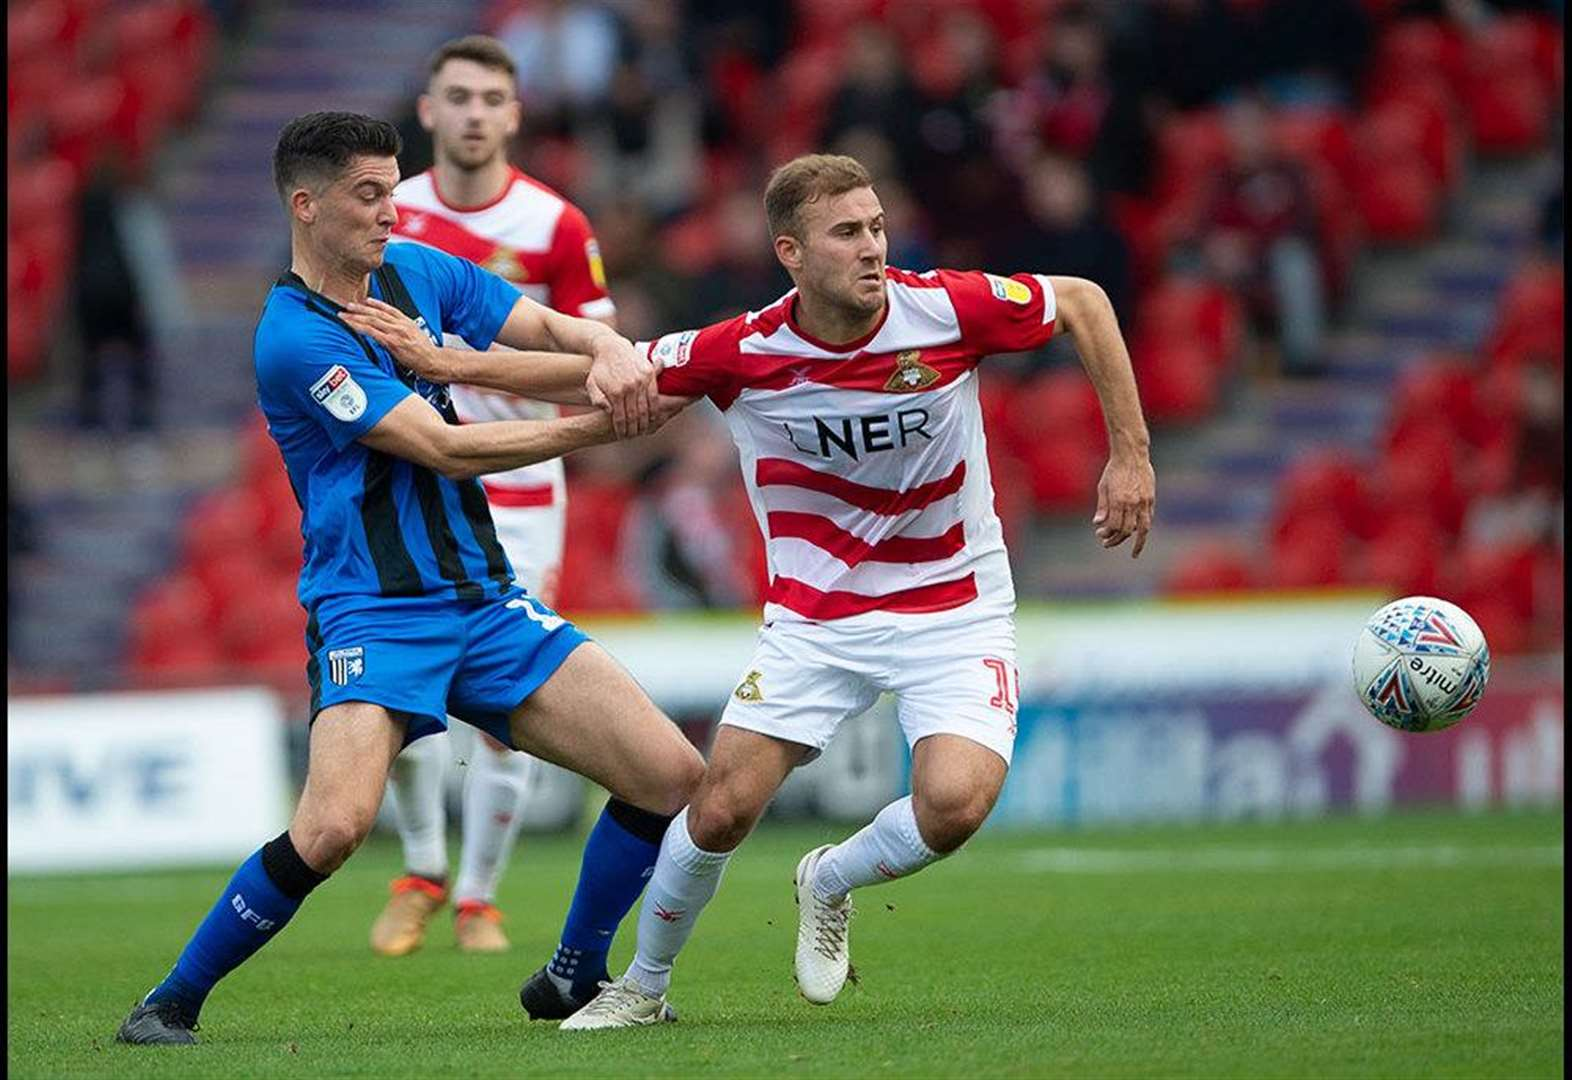 Report: Point for Gills after late drama